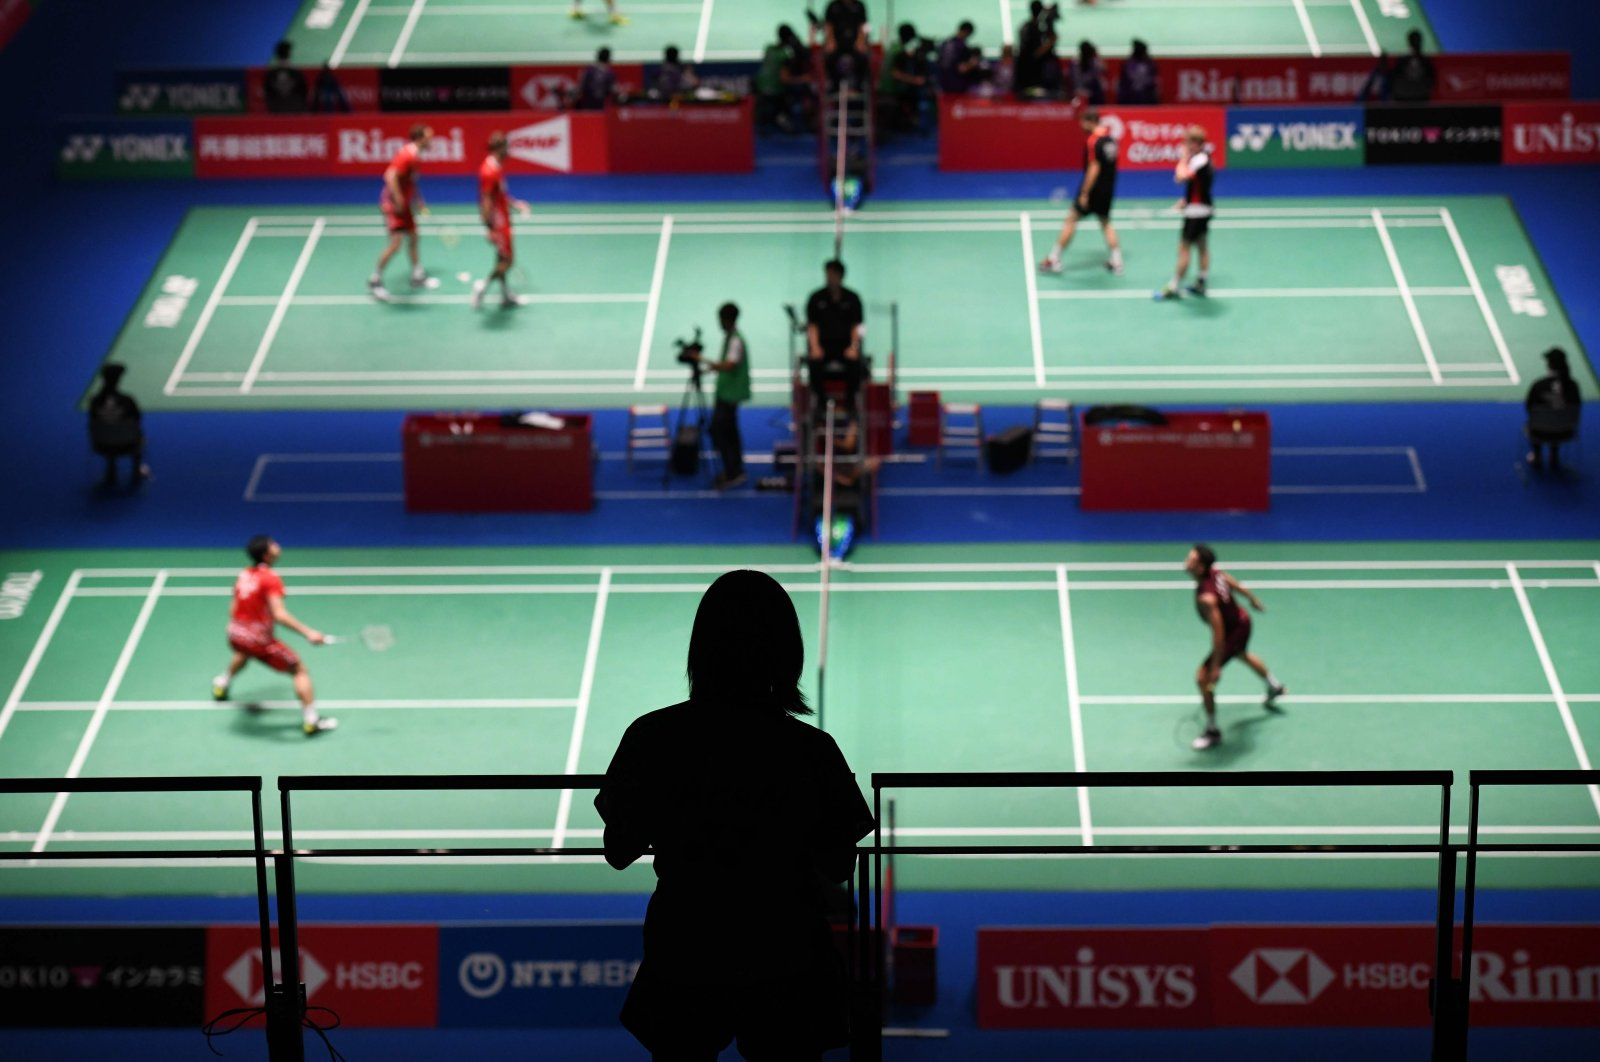 A girl watches matches at the Japan Open, in Tokyo, Japan, Sept. 13, 2018. (AFP Photo)